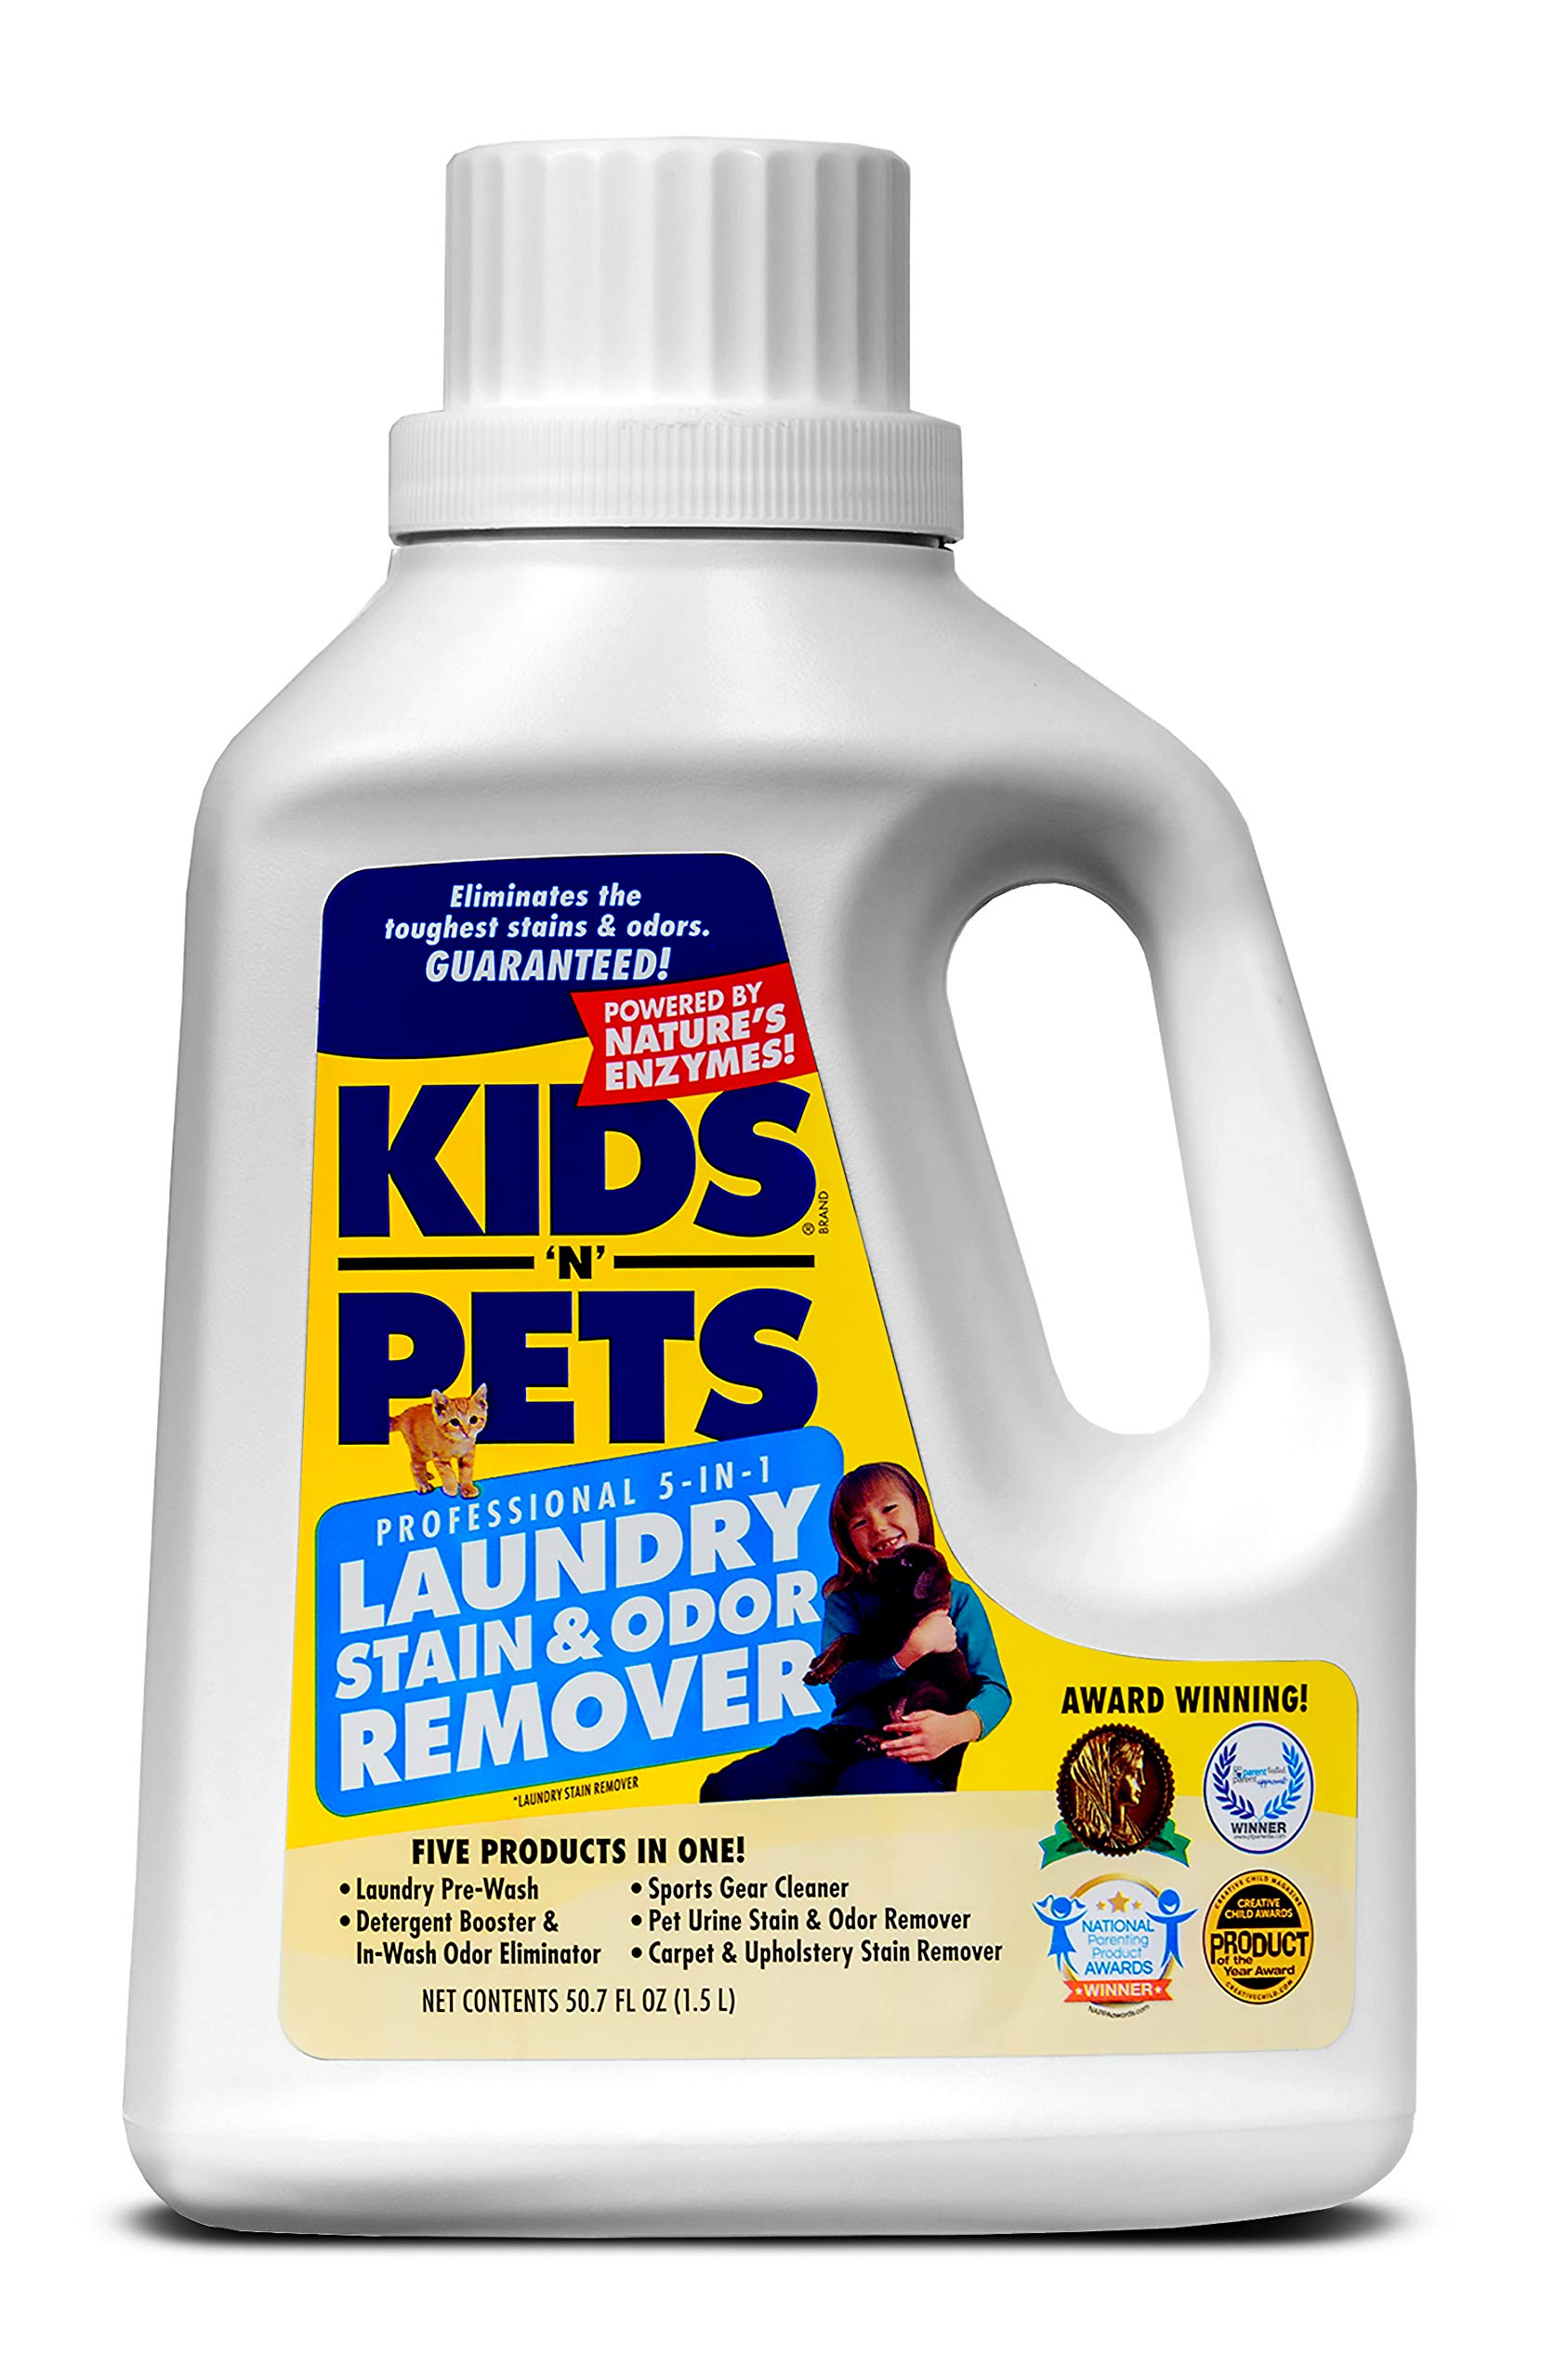 KIDS 'N' PETS - 5-In-1 Laundry Stain & Odor Remover - 50 oz - Professional Strength Formula Eliminates Tough Stains & Odors - No Harsh Chemicals, Non-Toxic & Child Safe